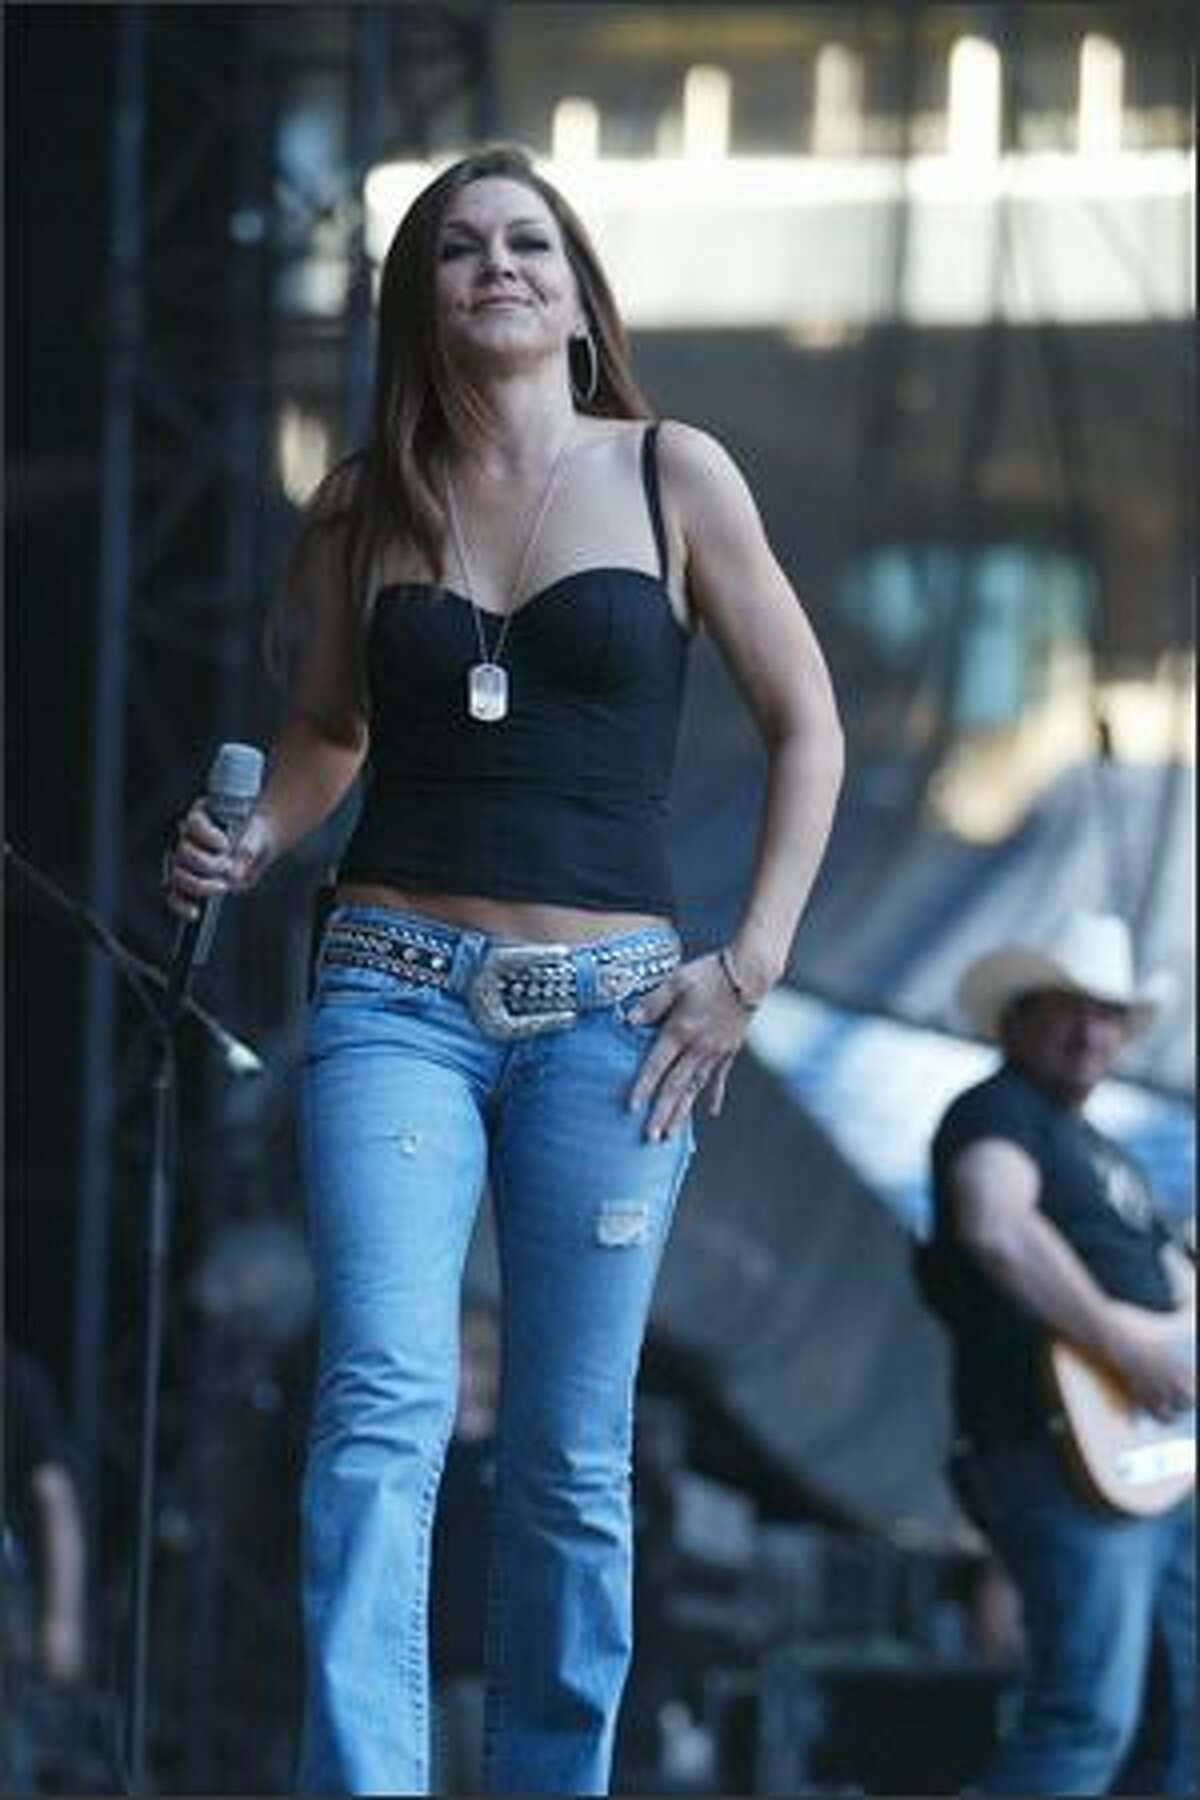 Gretchen Wilson arrives on stage to begin her performance at Qwest Field Saturday evening.